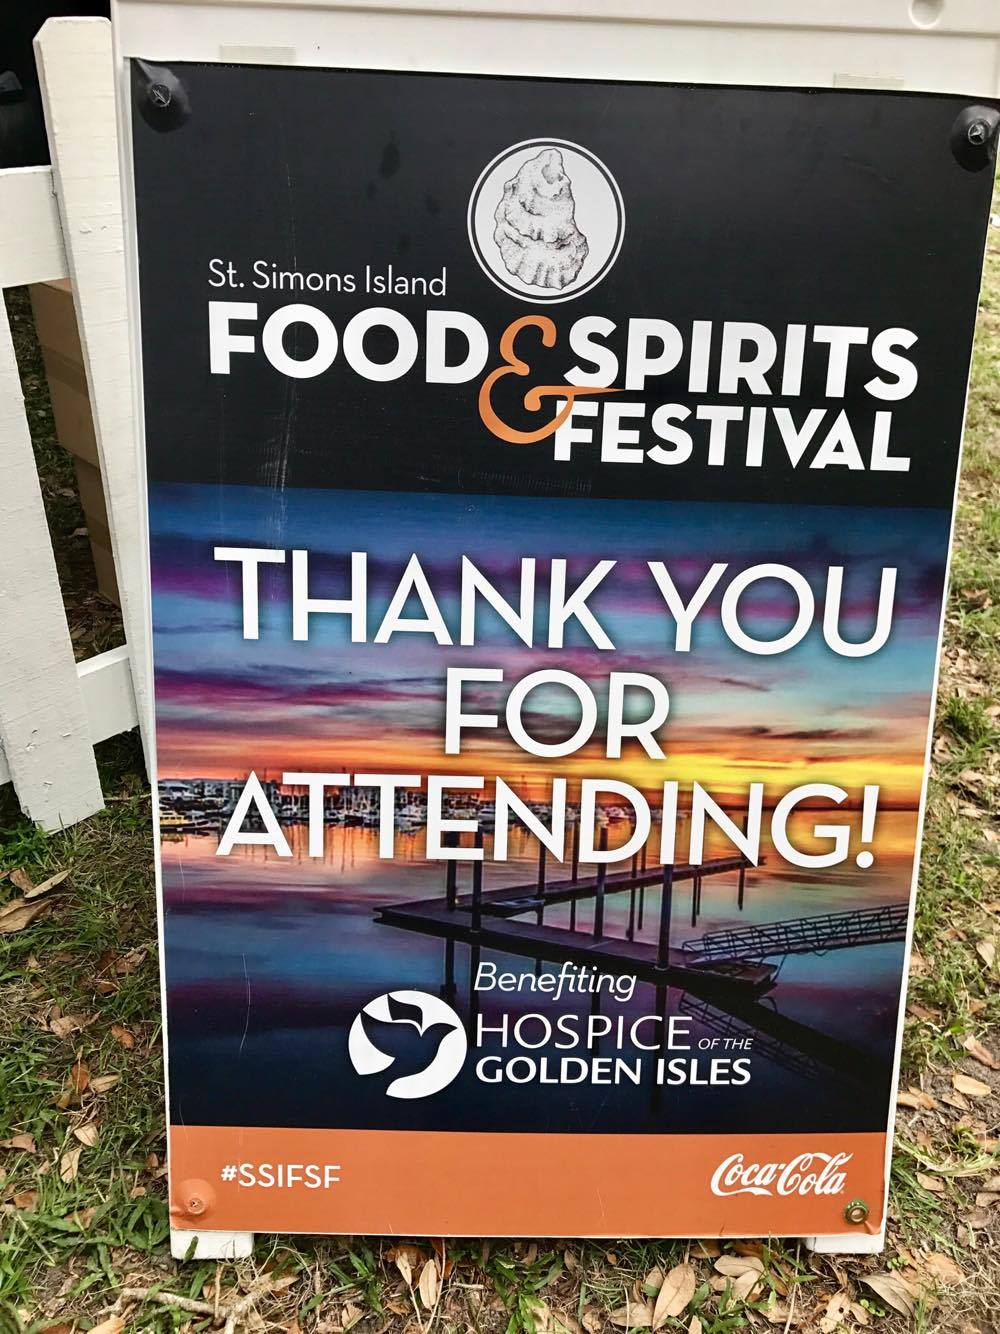 Thank you for Attending - St Simons Island Food Spirits Festival